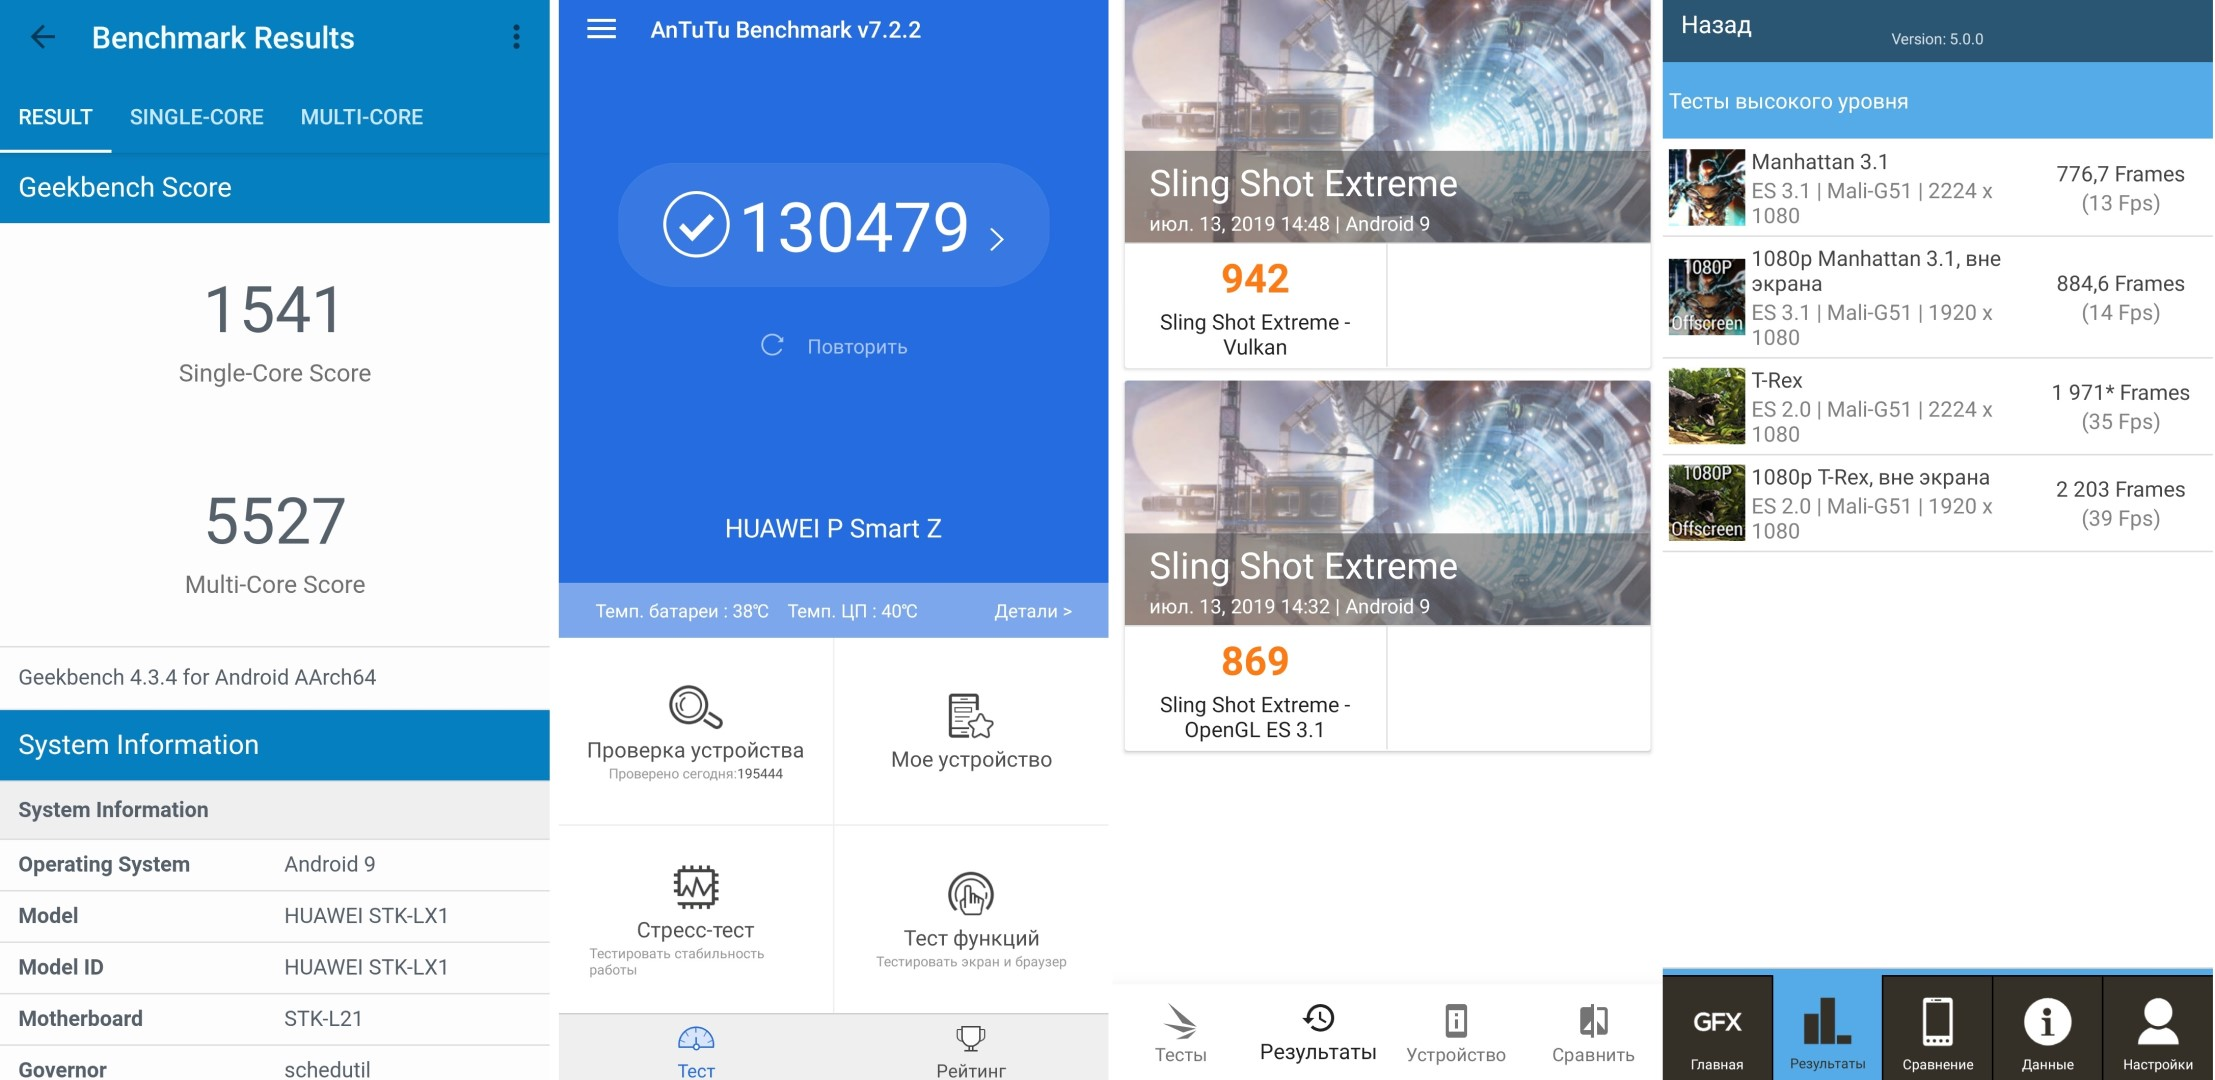 Huawei P Smart Z benchmarks